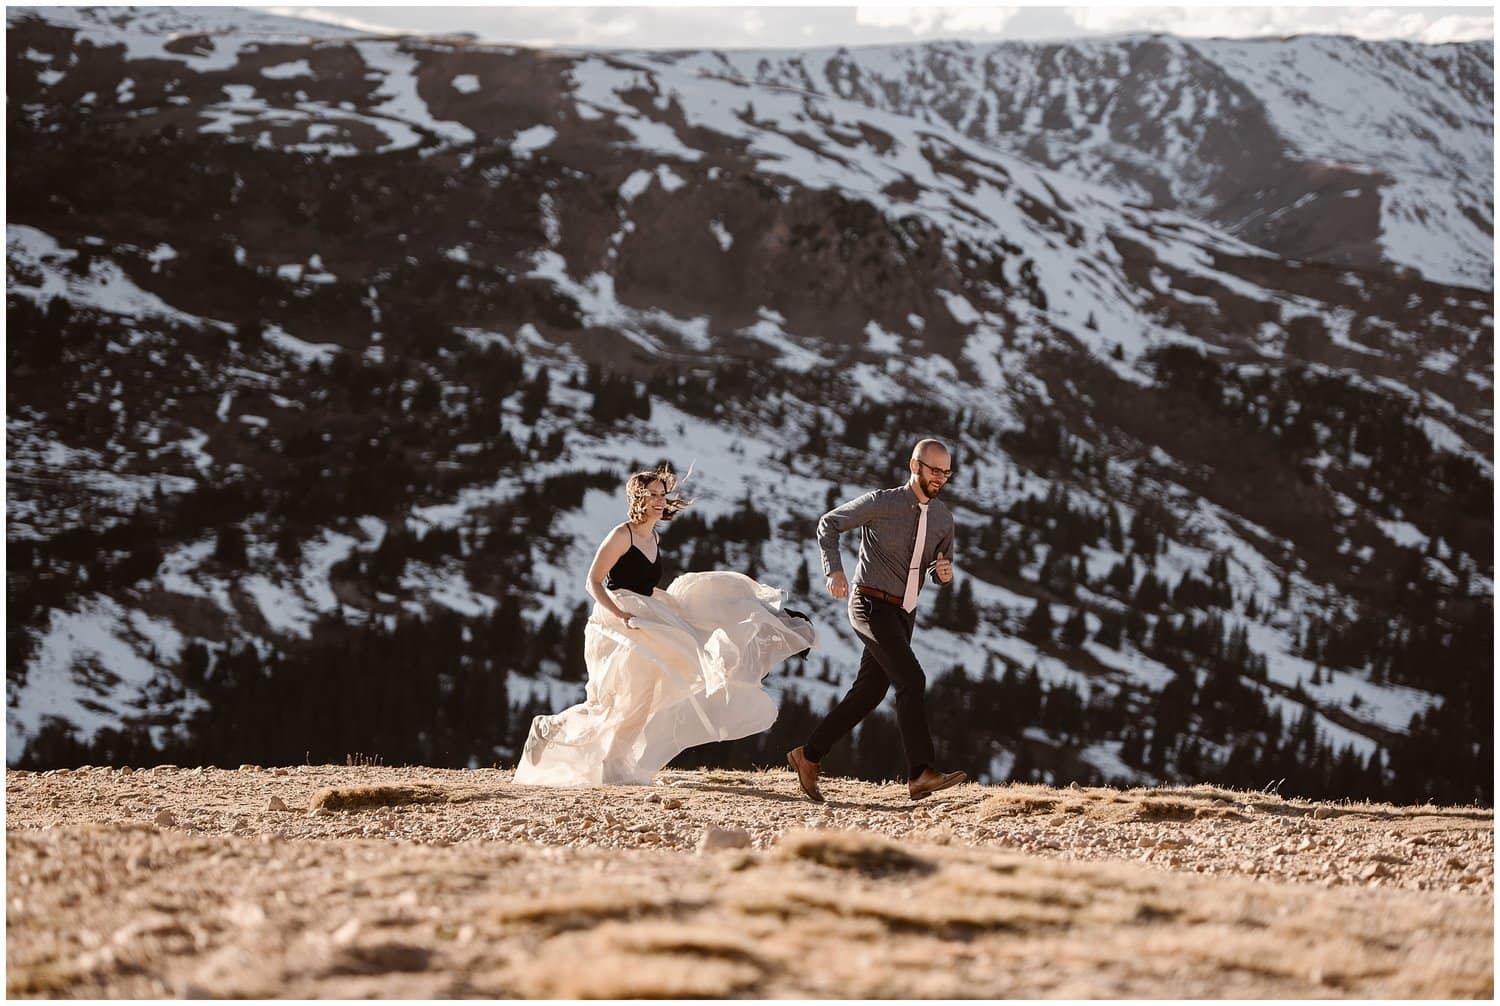 Bride and groom run in the mountains on their wedding day.